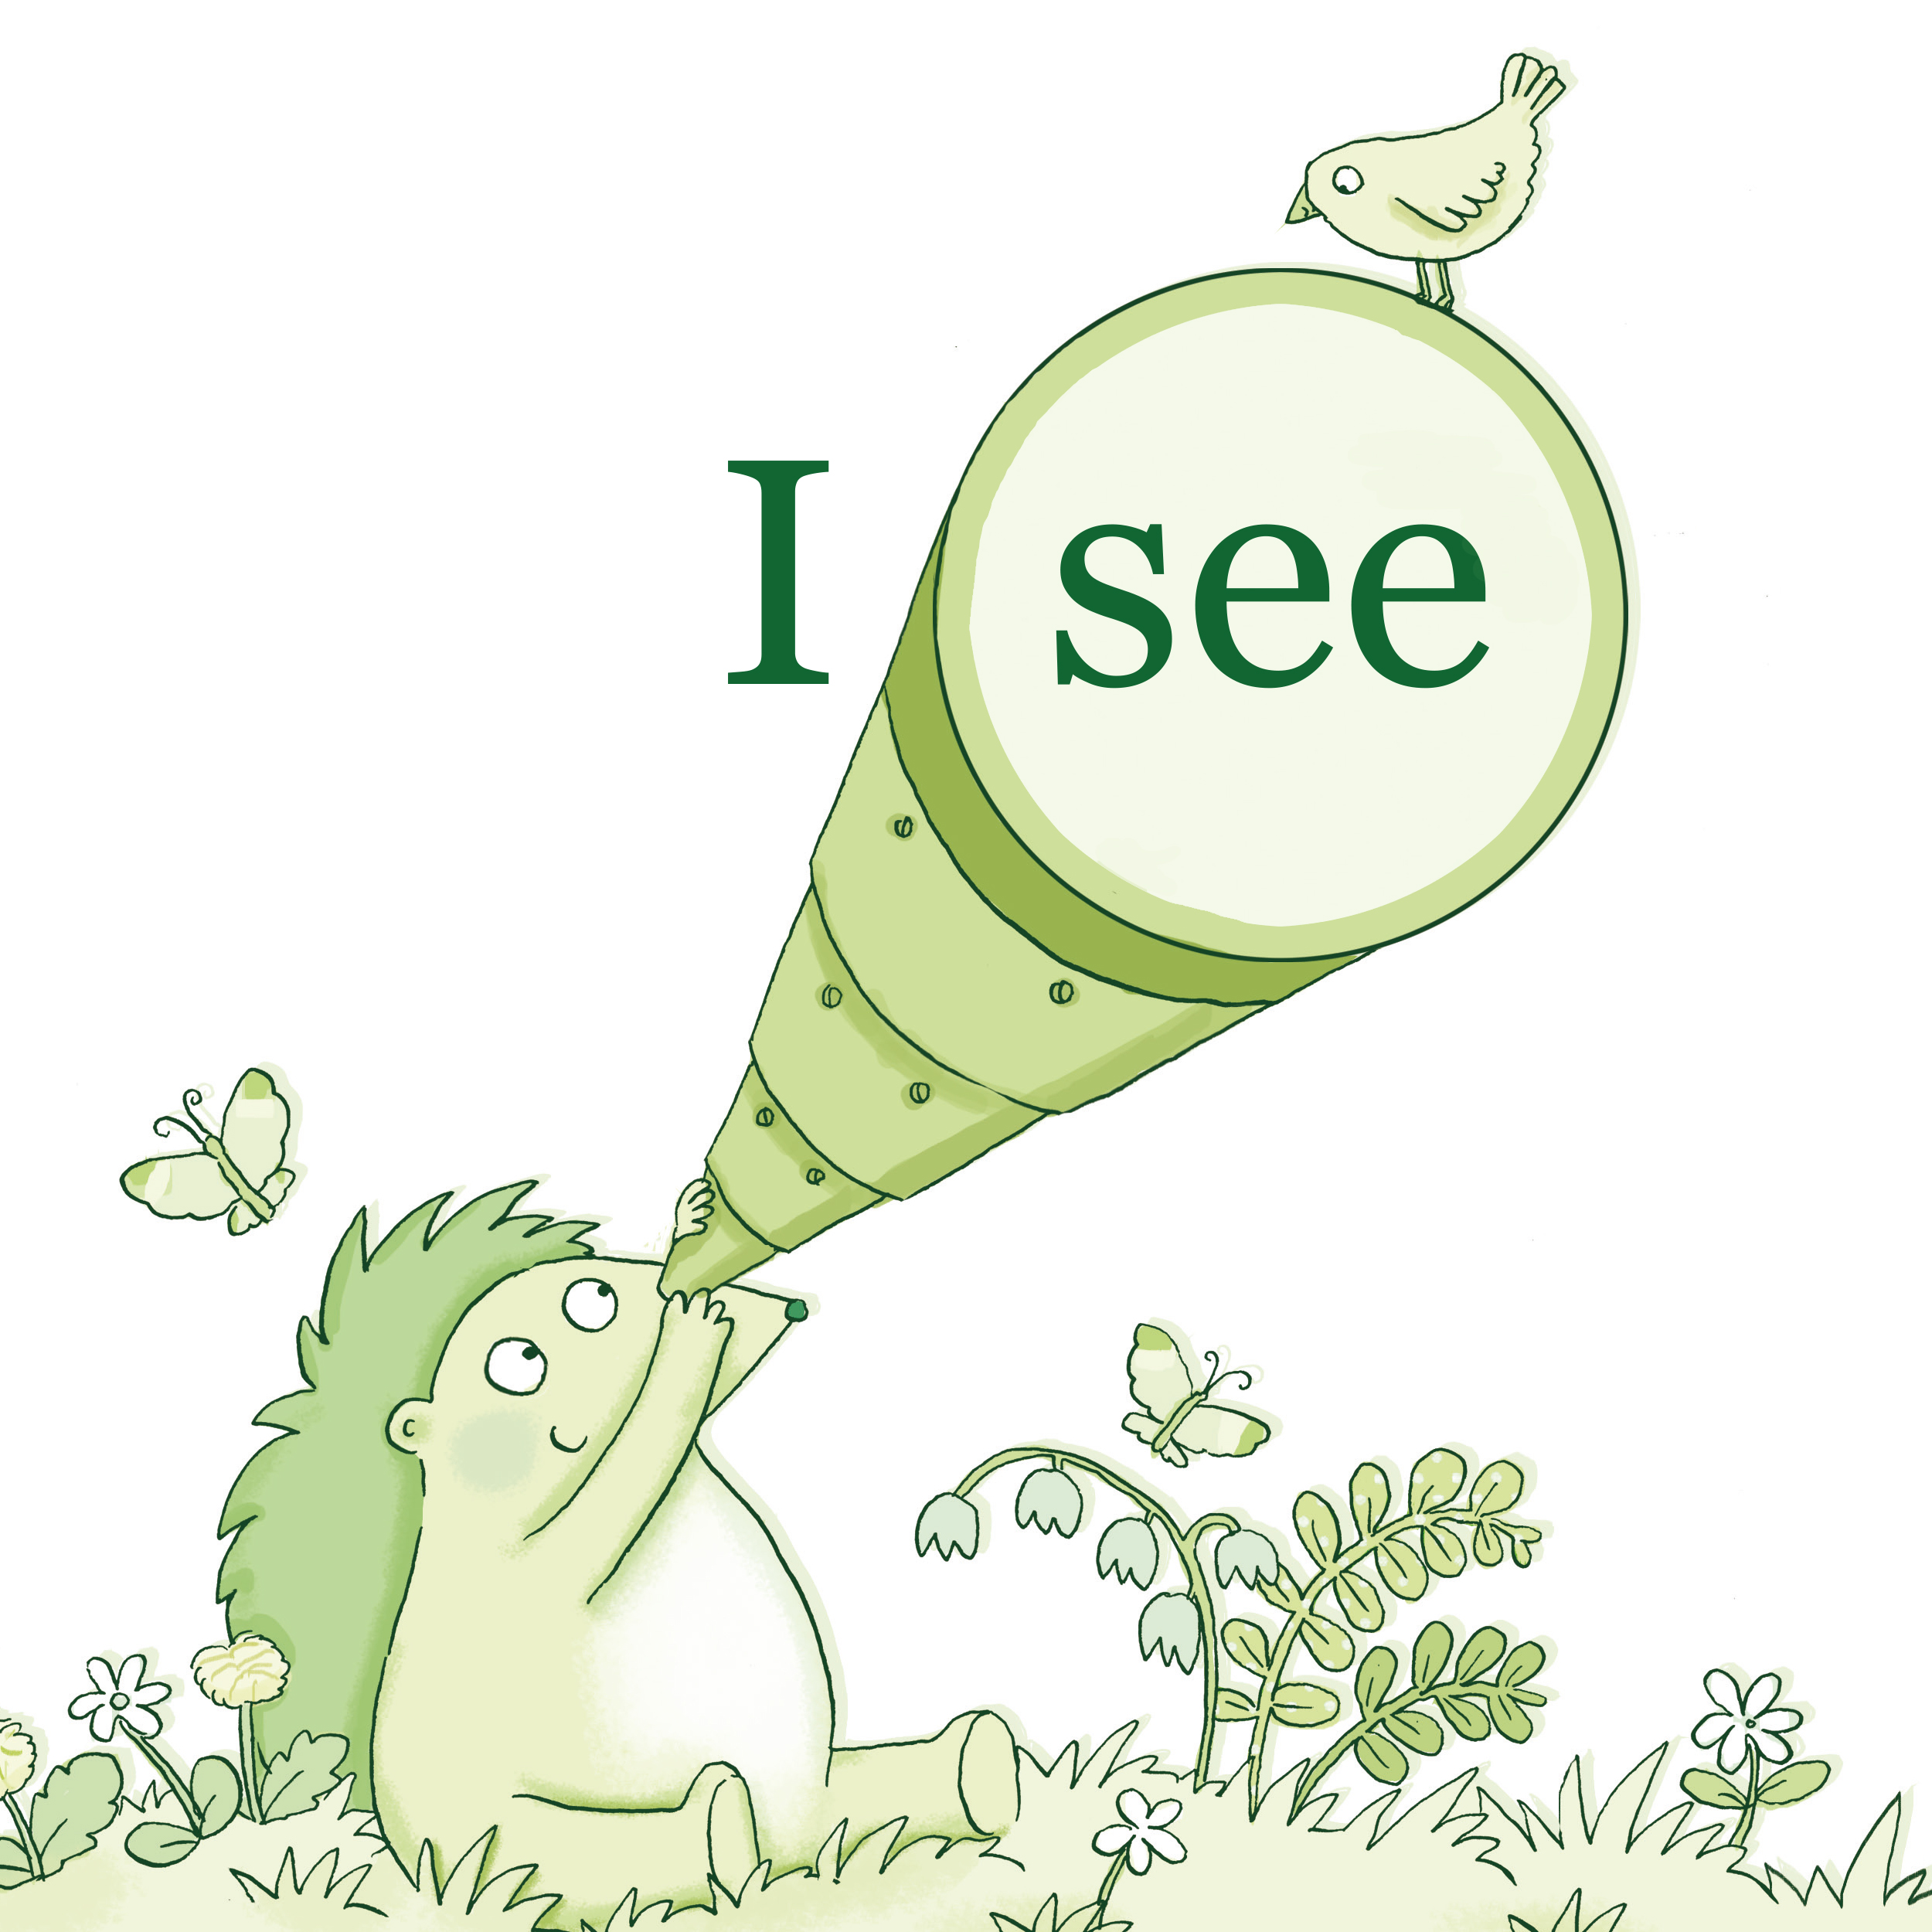 I see, you see